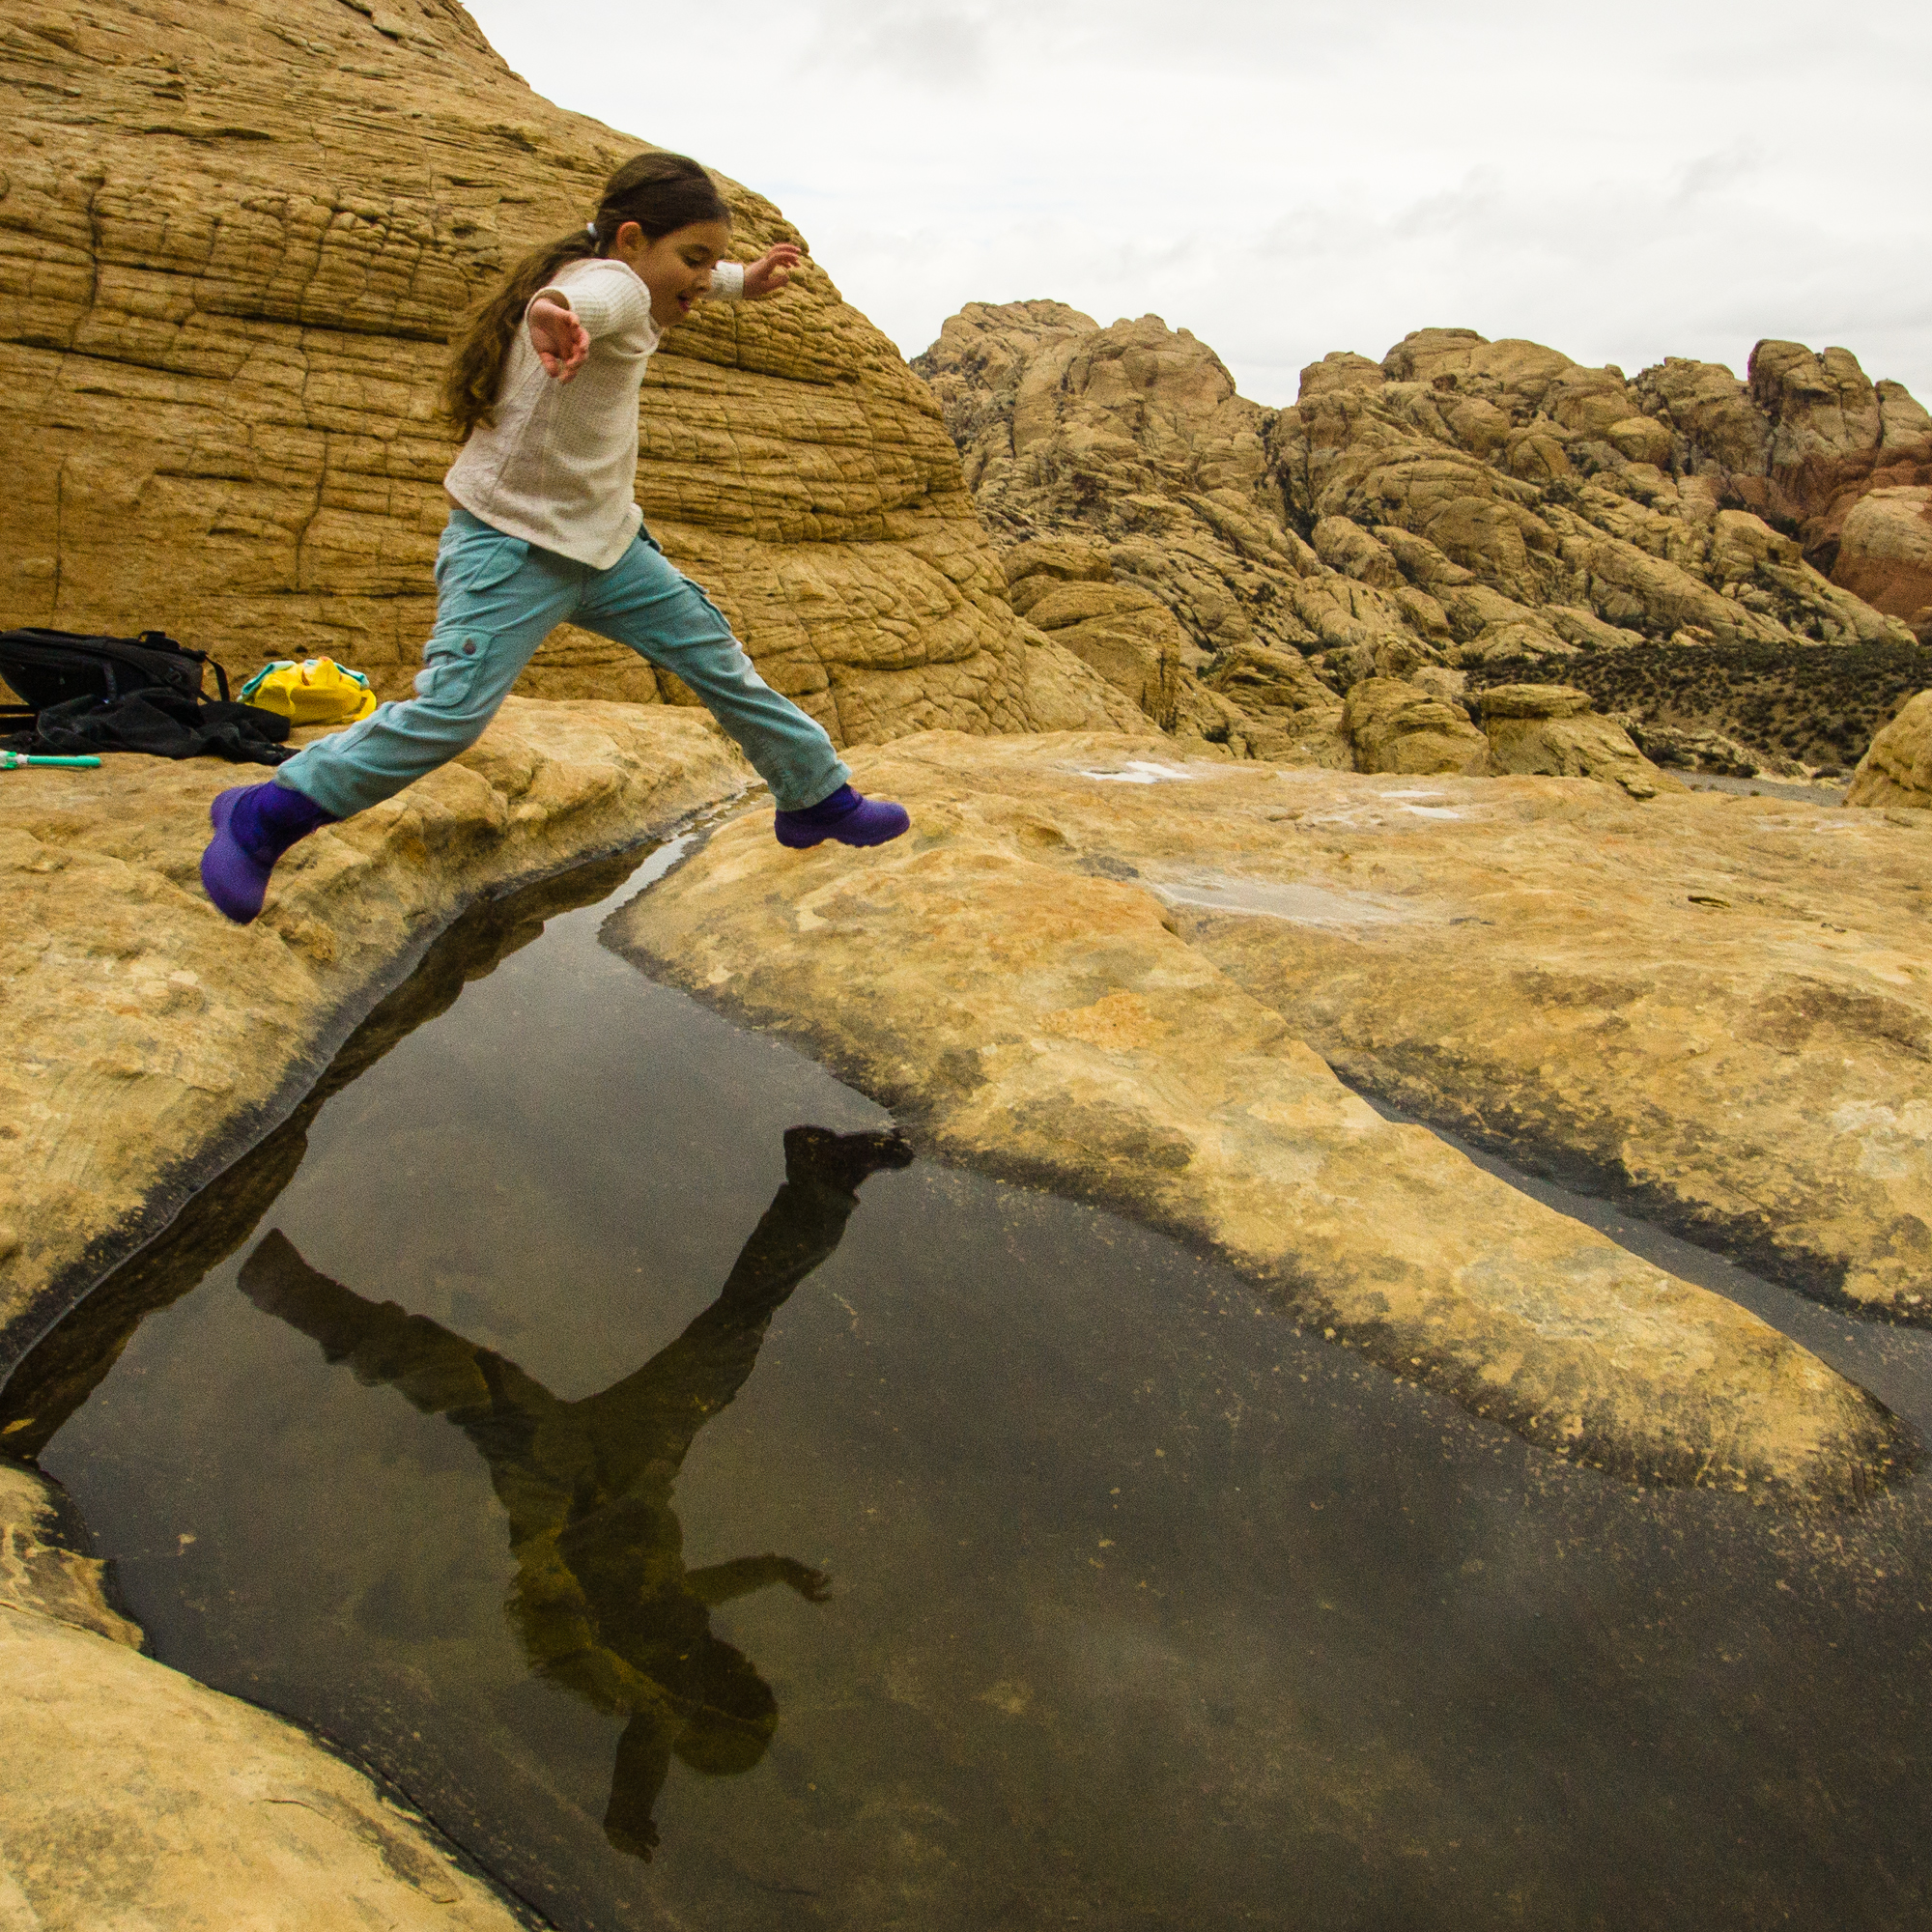 My Daughter reflected in a pool. If I was using a CPL then her reflection probably would be more defined and less of the rocks would be visible.